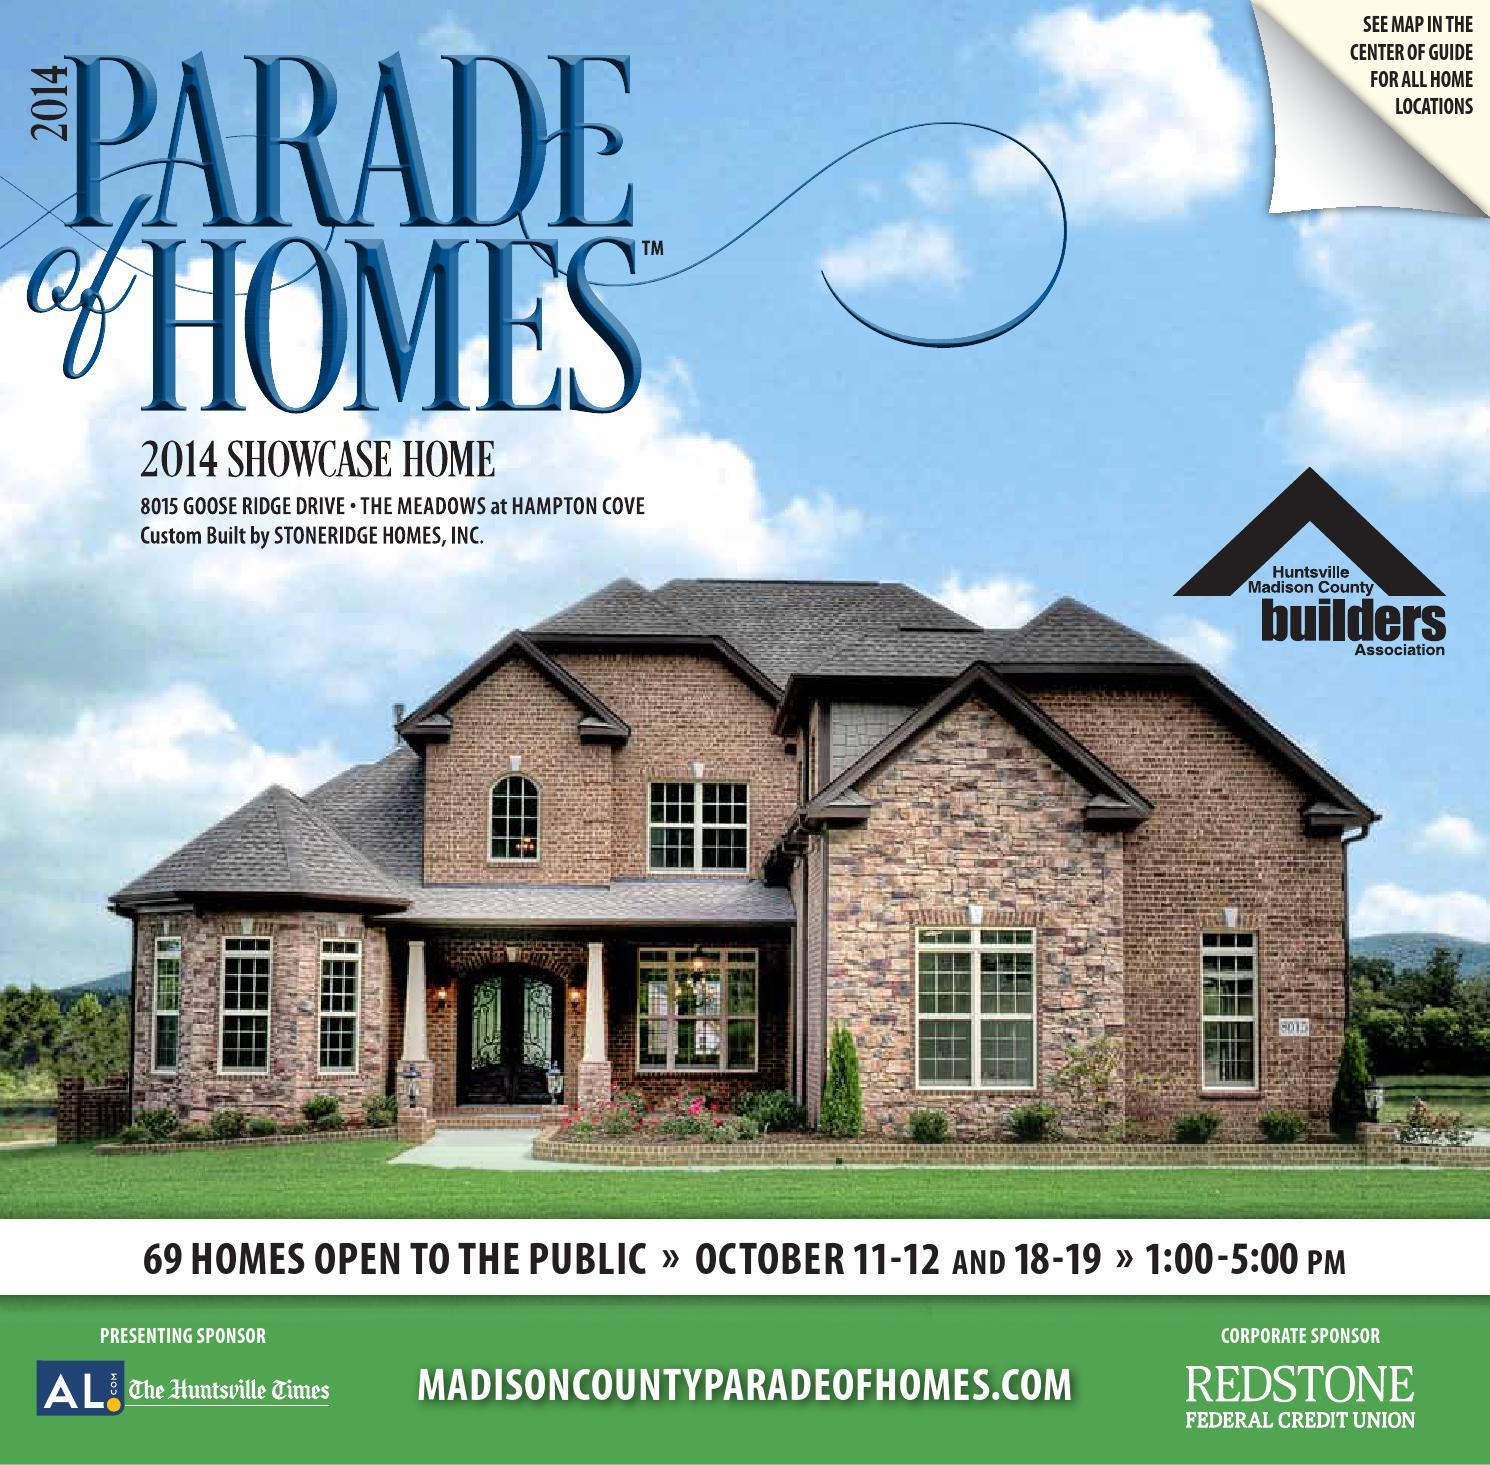 2017 Parade Of Homes Guidebook By Huntsville Madison County Builders Ociation Issuu